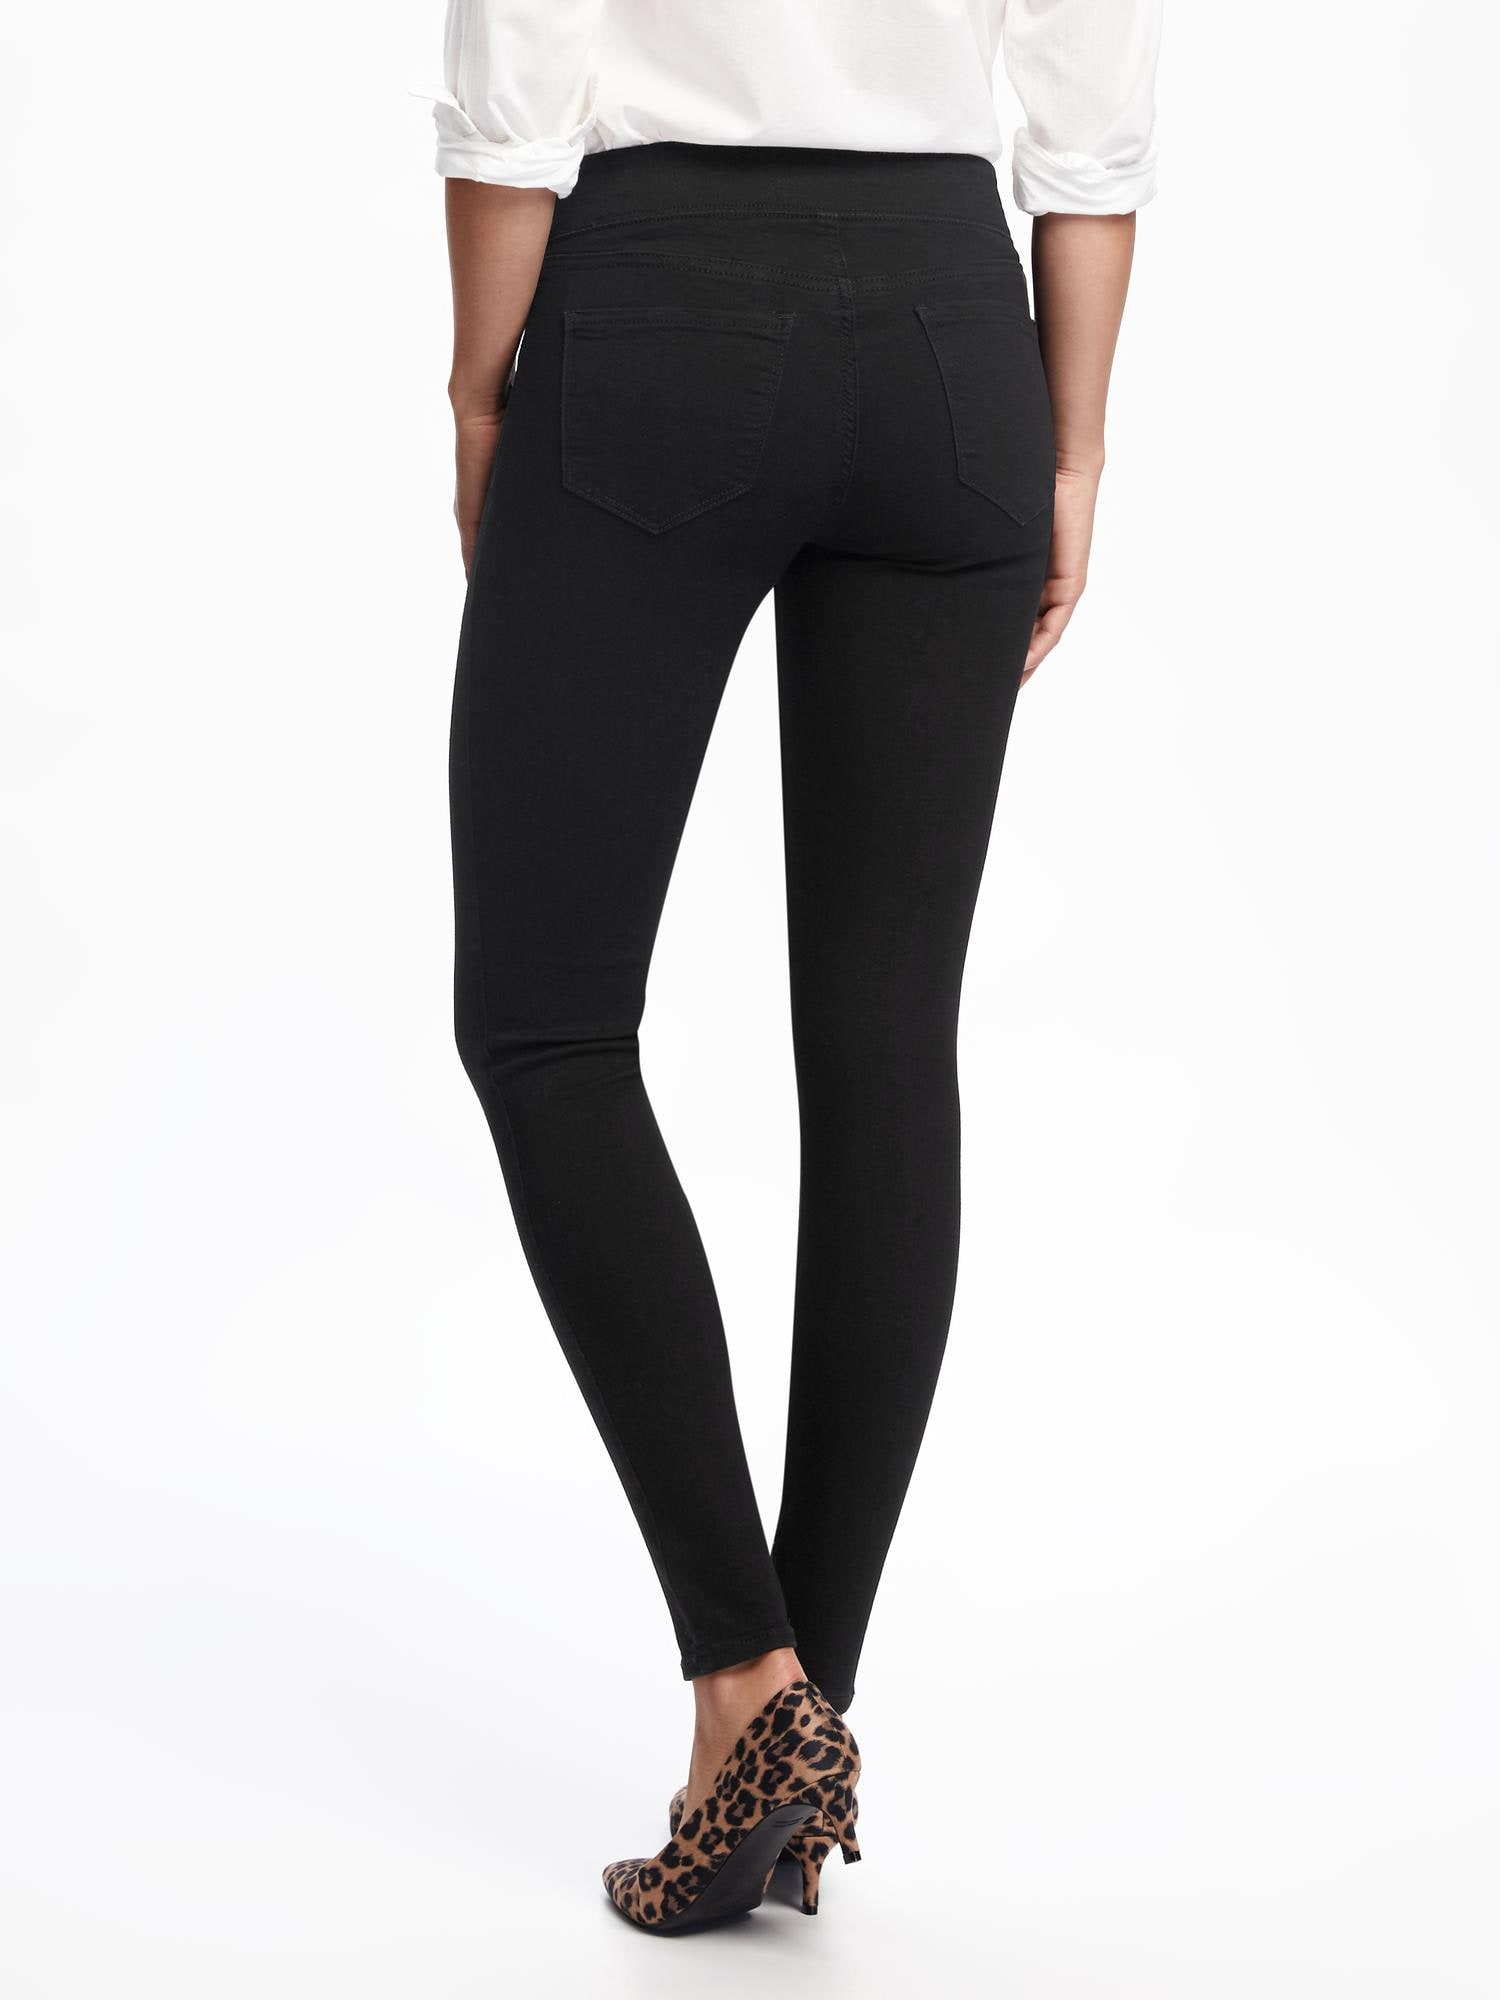 a00e65cb10b7a Mid-Rise Black Rockstar Jeggings for Women | Old Navy